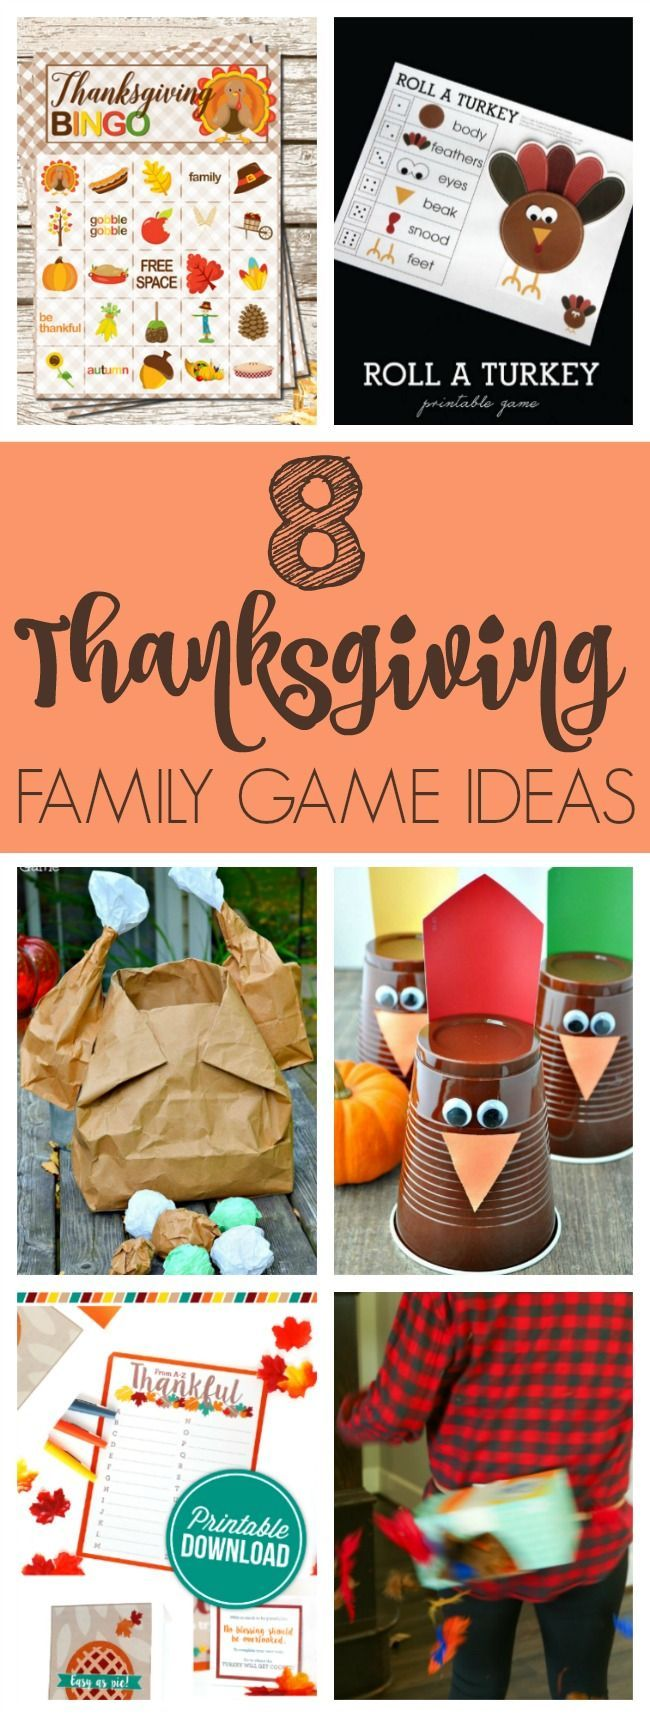 Best fun kids activities images on pinterest